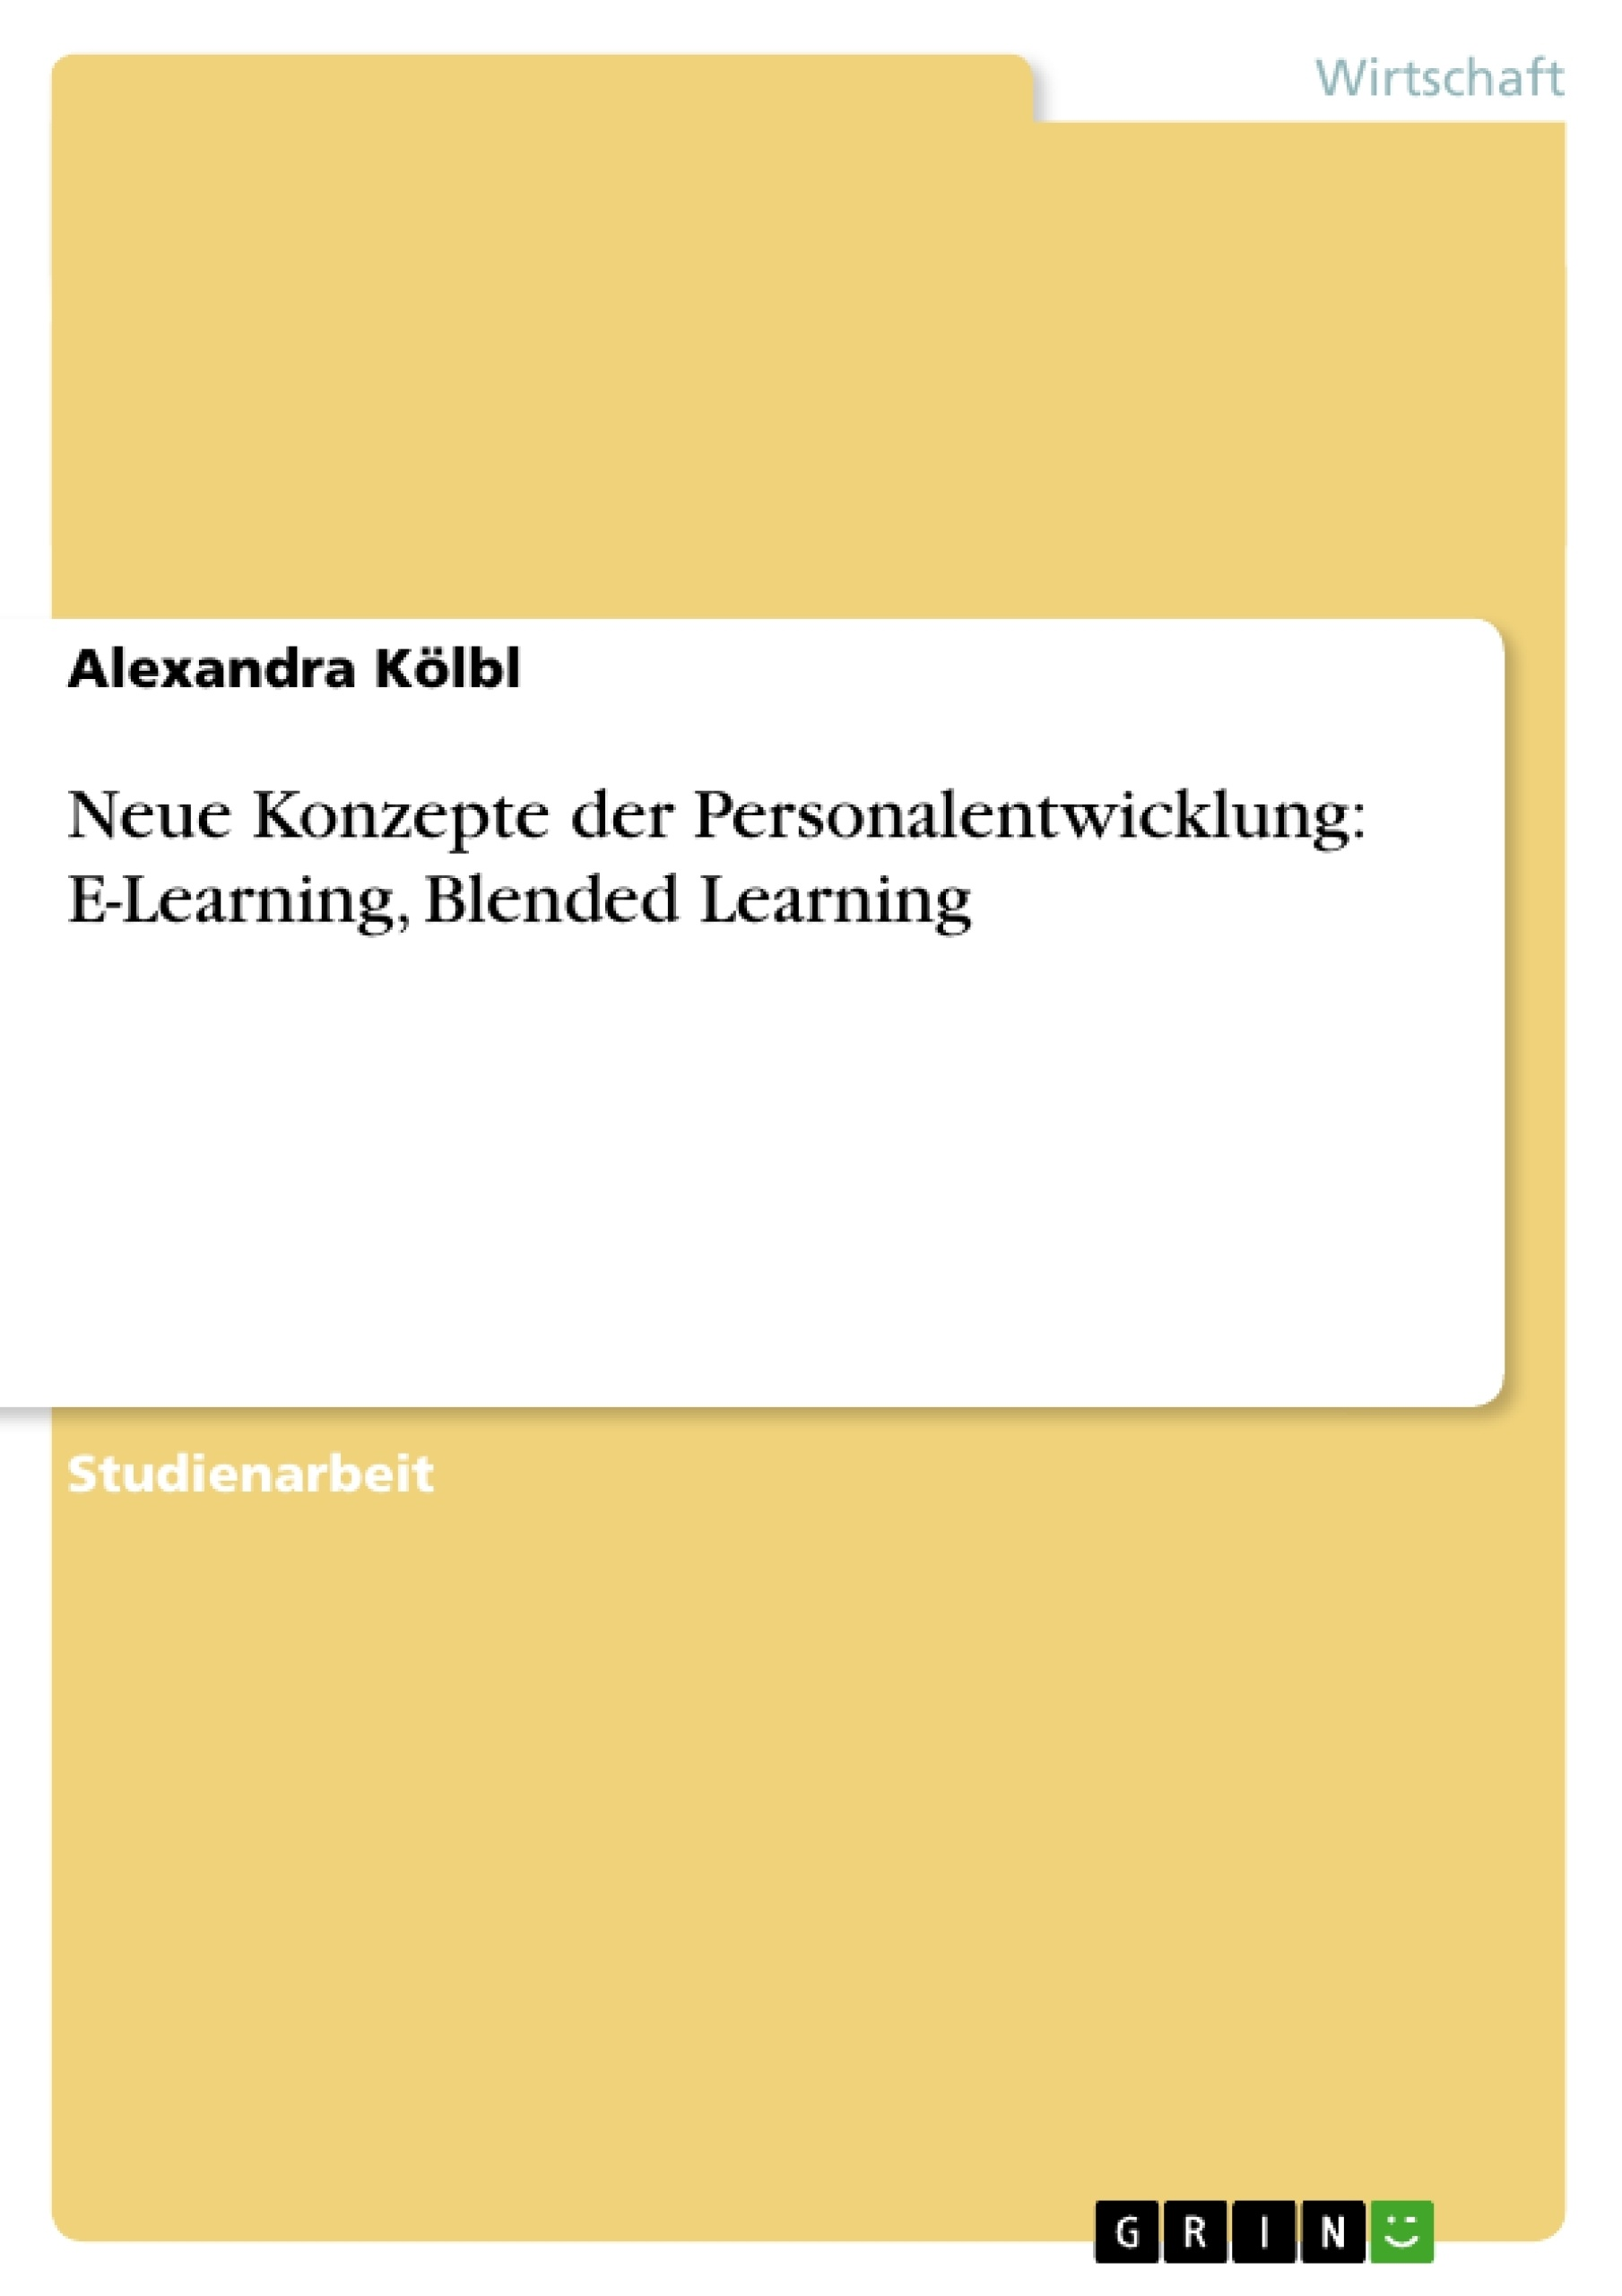 Titel: Neue Konzepte der Personalentwicklung: E-Learning, Blended Learning